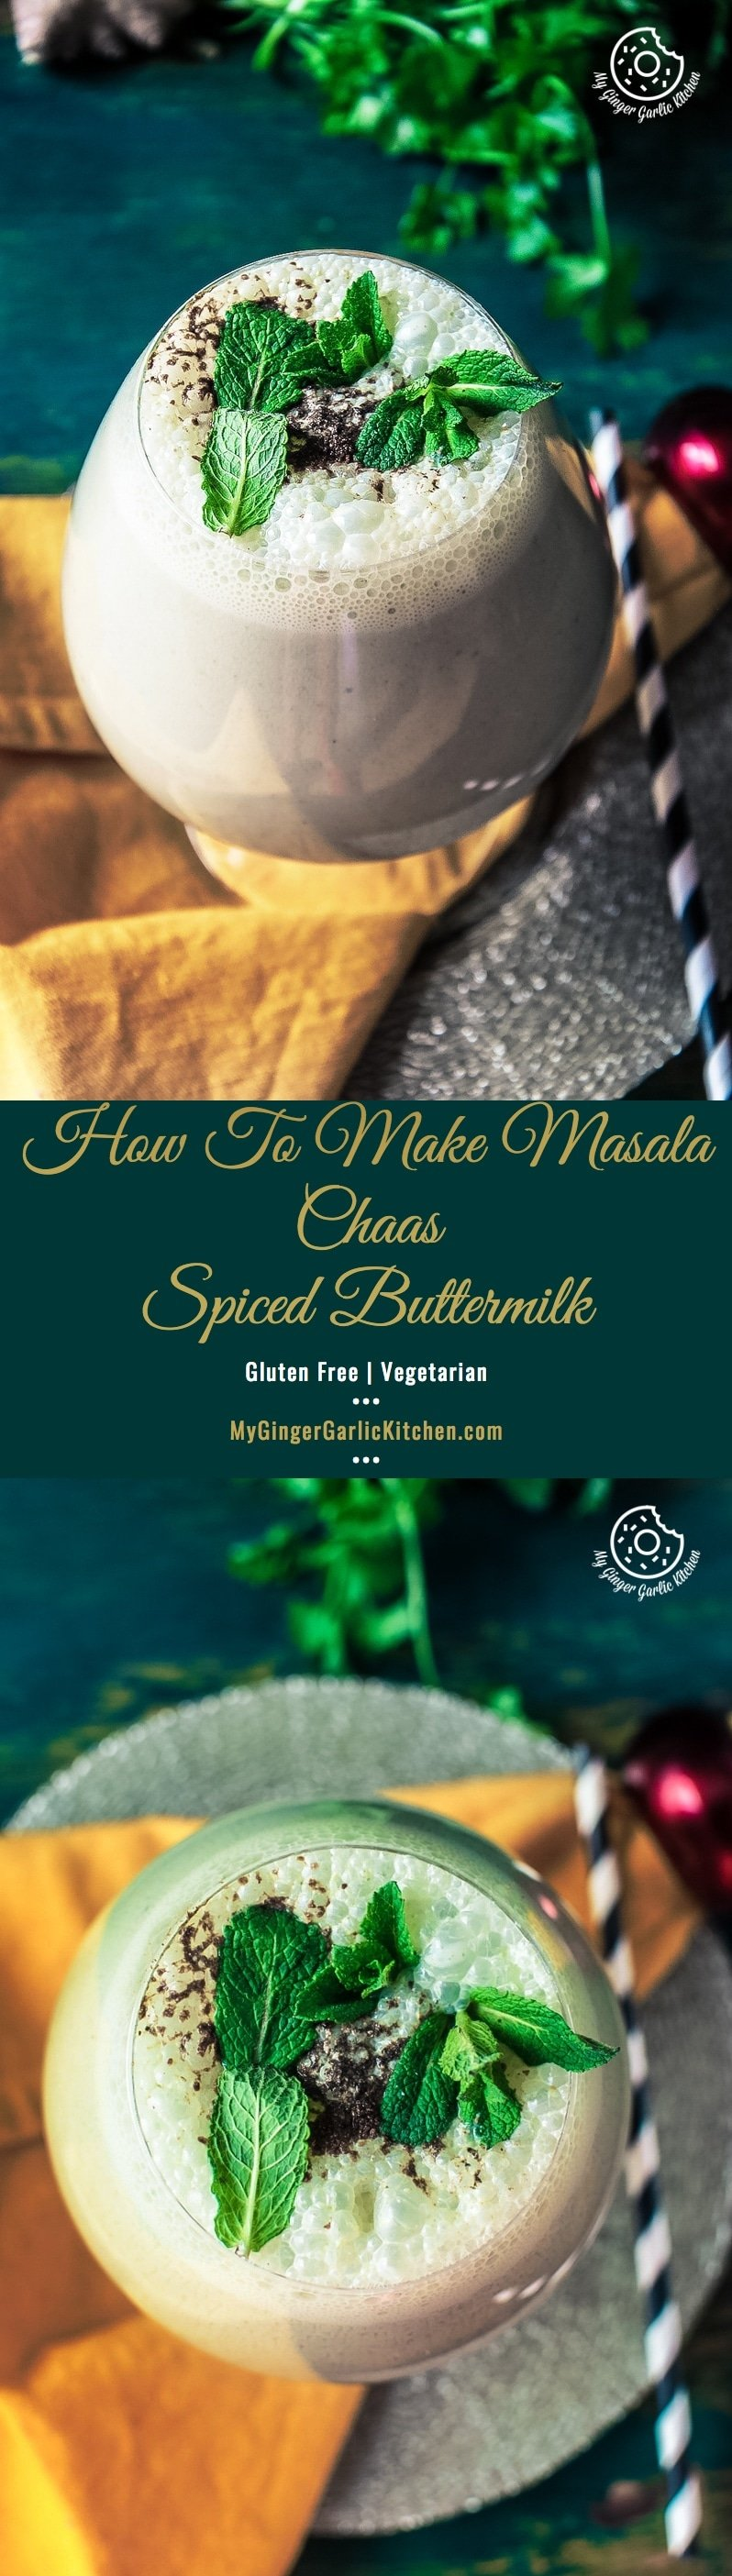 How To Make Masala Chaas   Spiced Buttermilk   mygingergarlickitchen.com/ @anupama_dreams